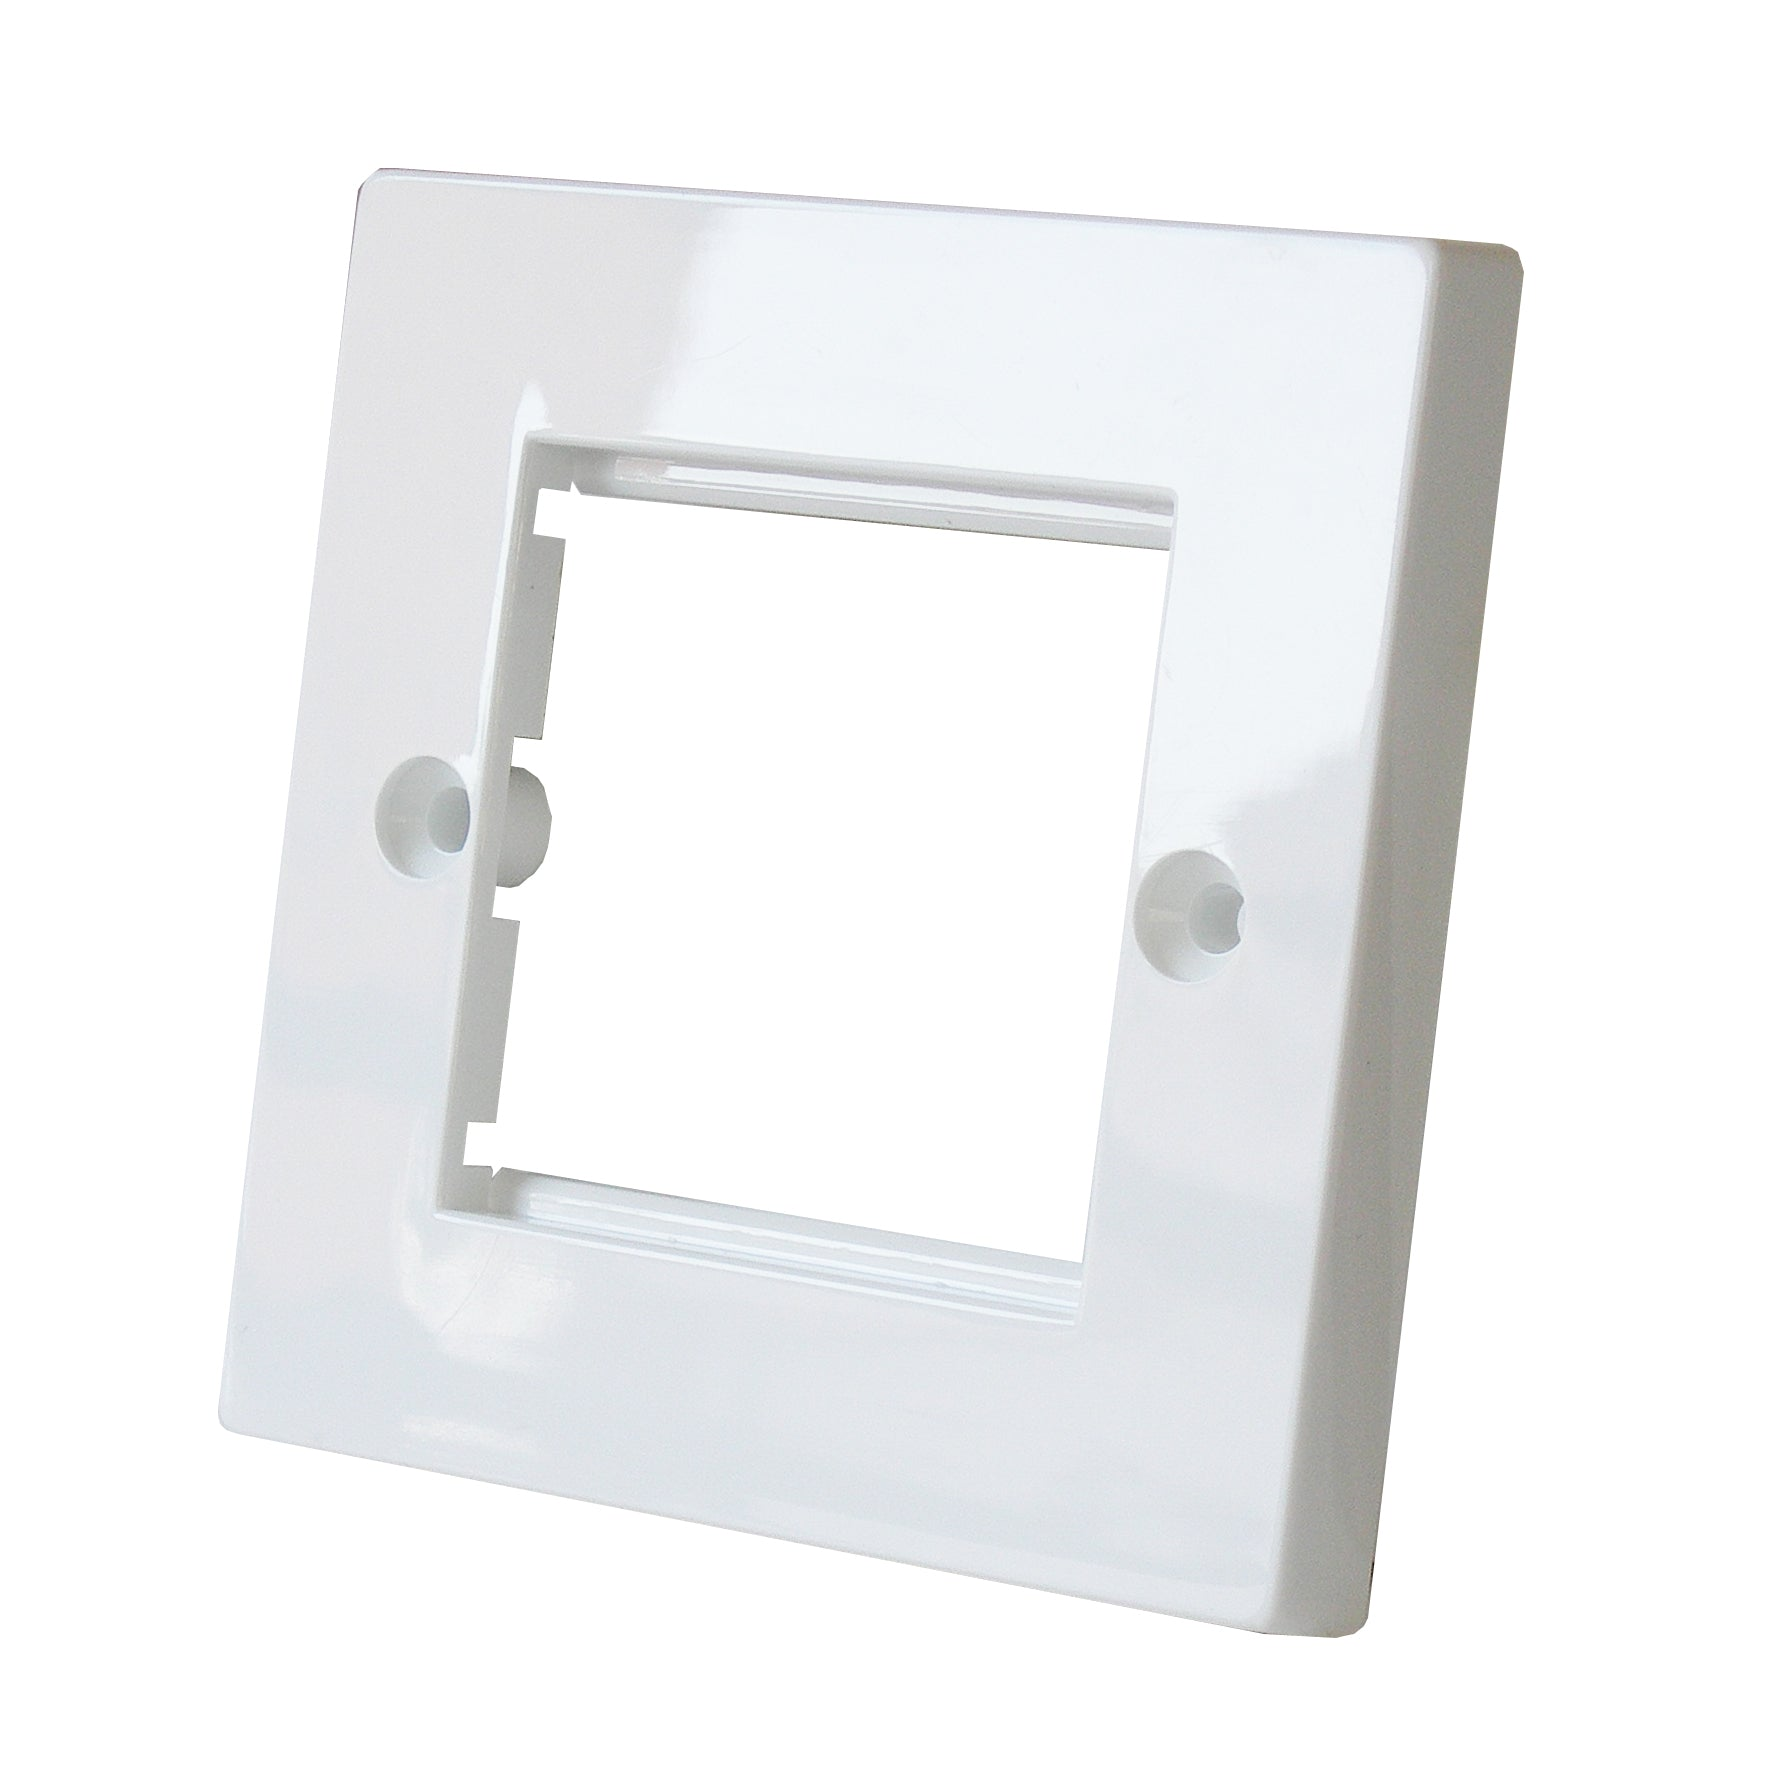 euromod faceplate single white front